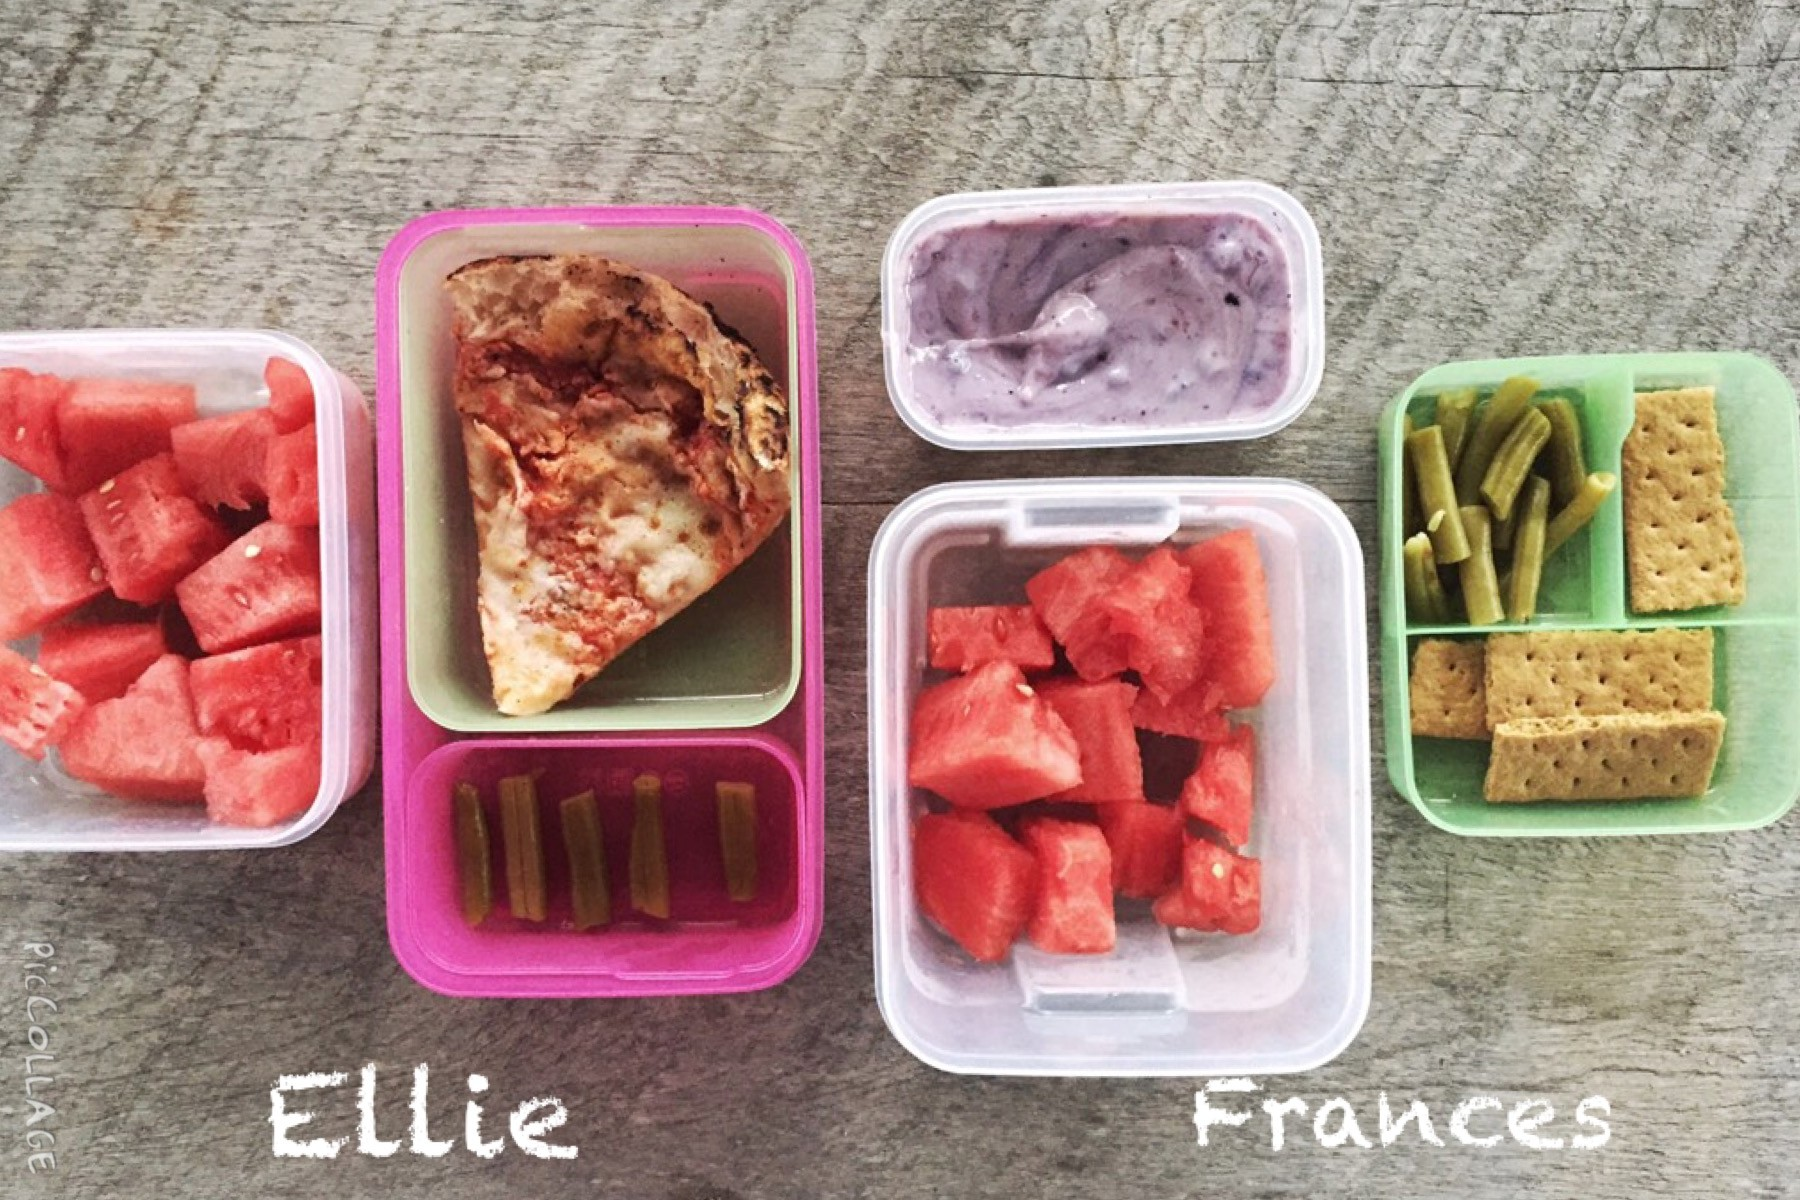 31 healthy kid friendly lunchbox ideas holley grainger lunchbox recipes from 2014 2015 school year forumfinder Images